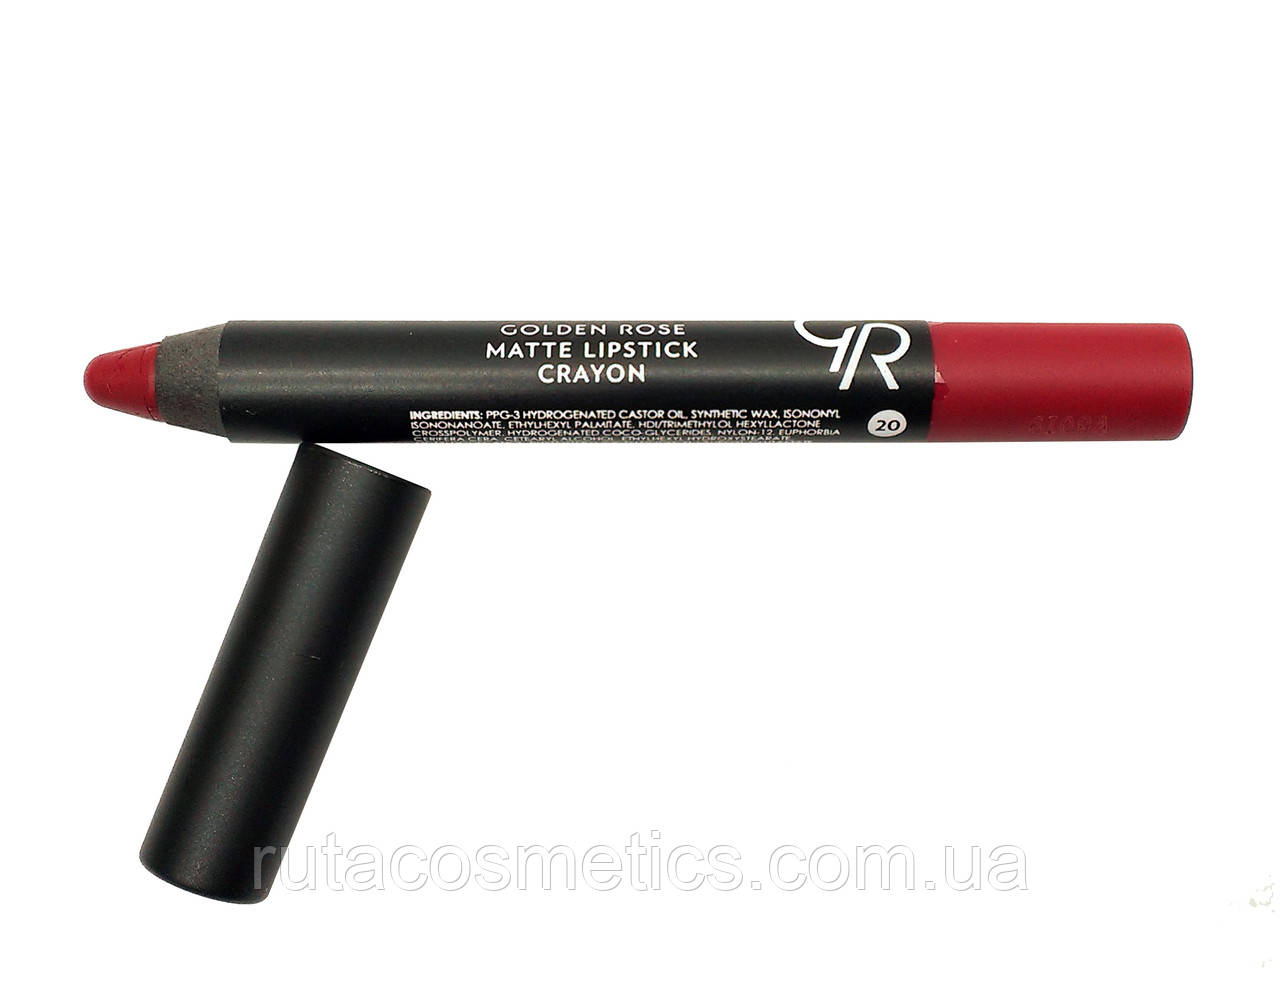 Матовая помада-карандаш для губ GOLDEN ROSE MATTE LIPSTICK CRAYON [20]